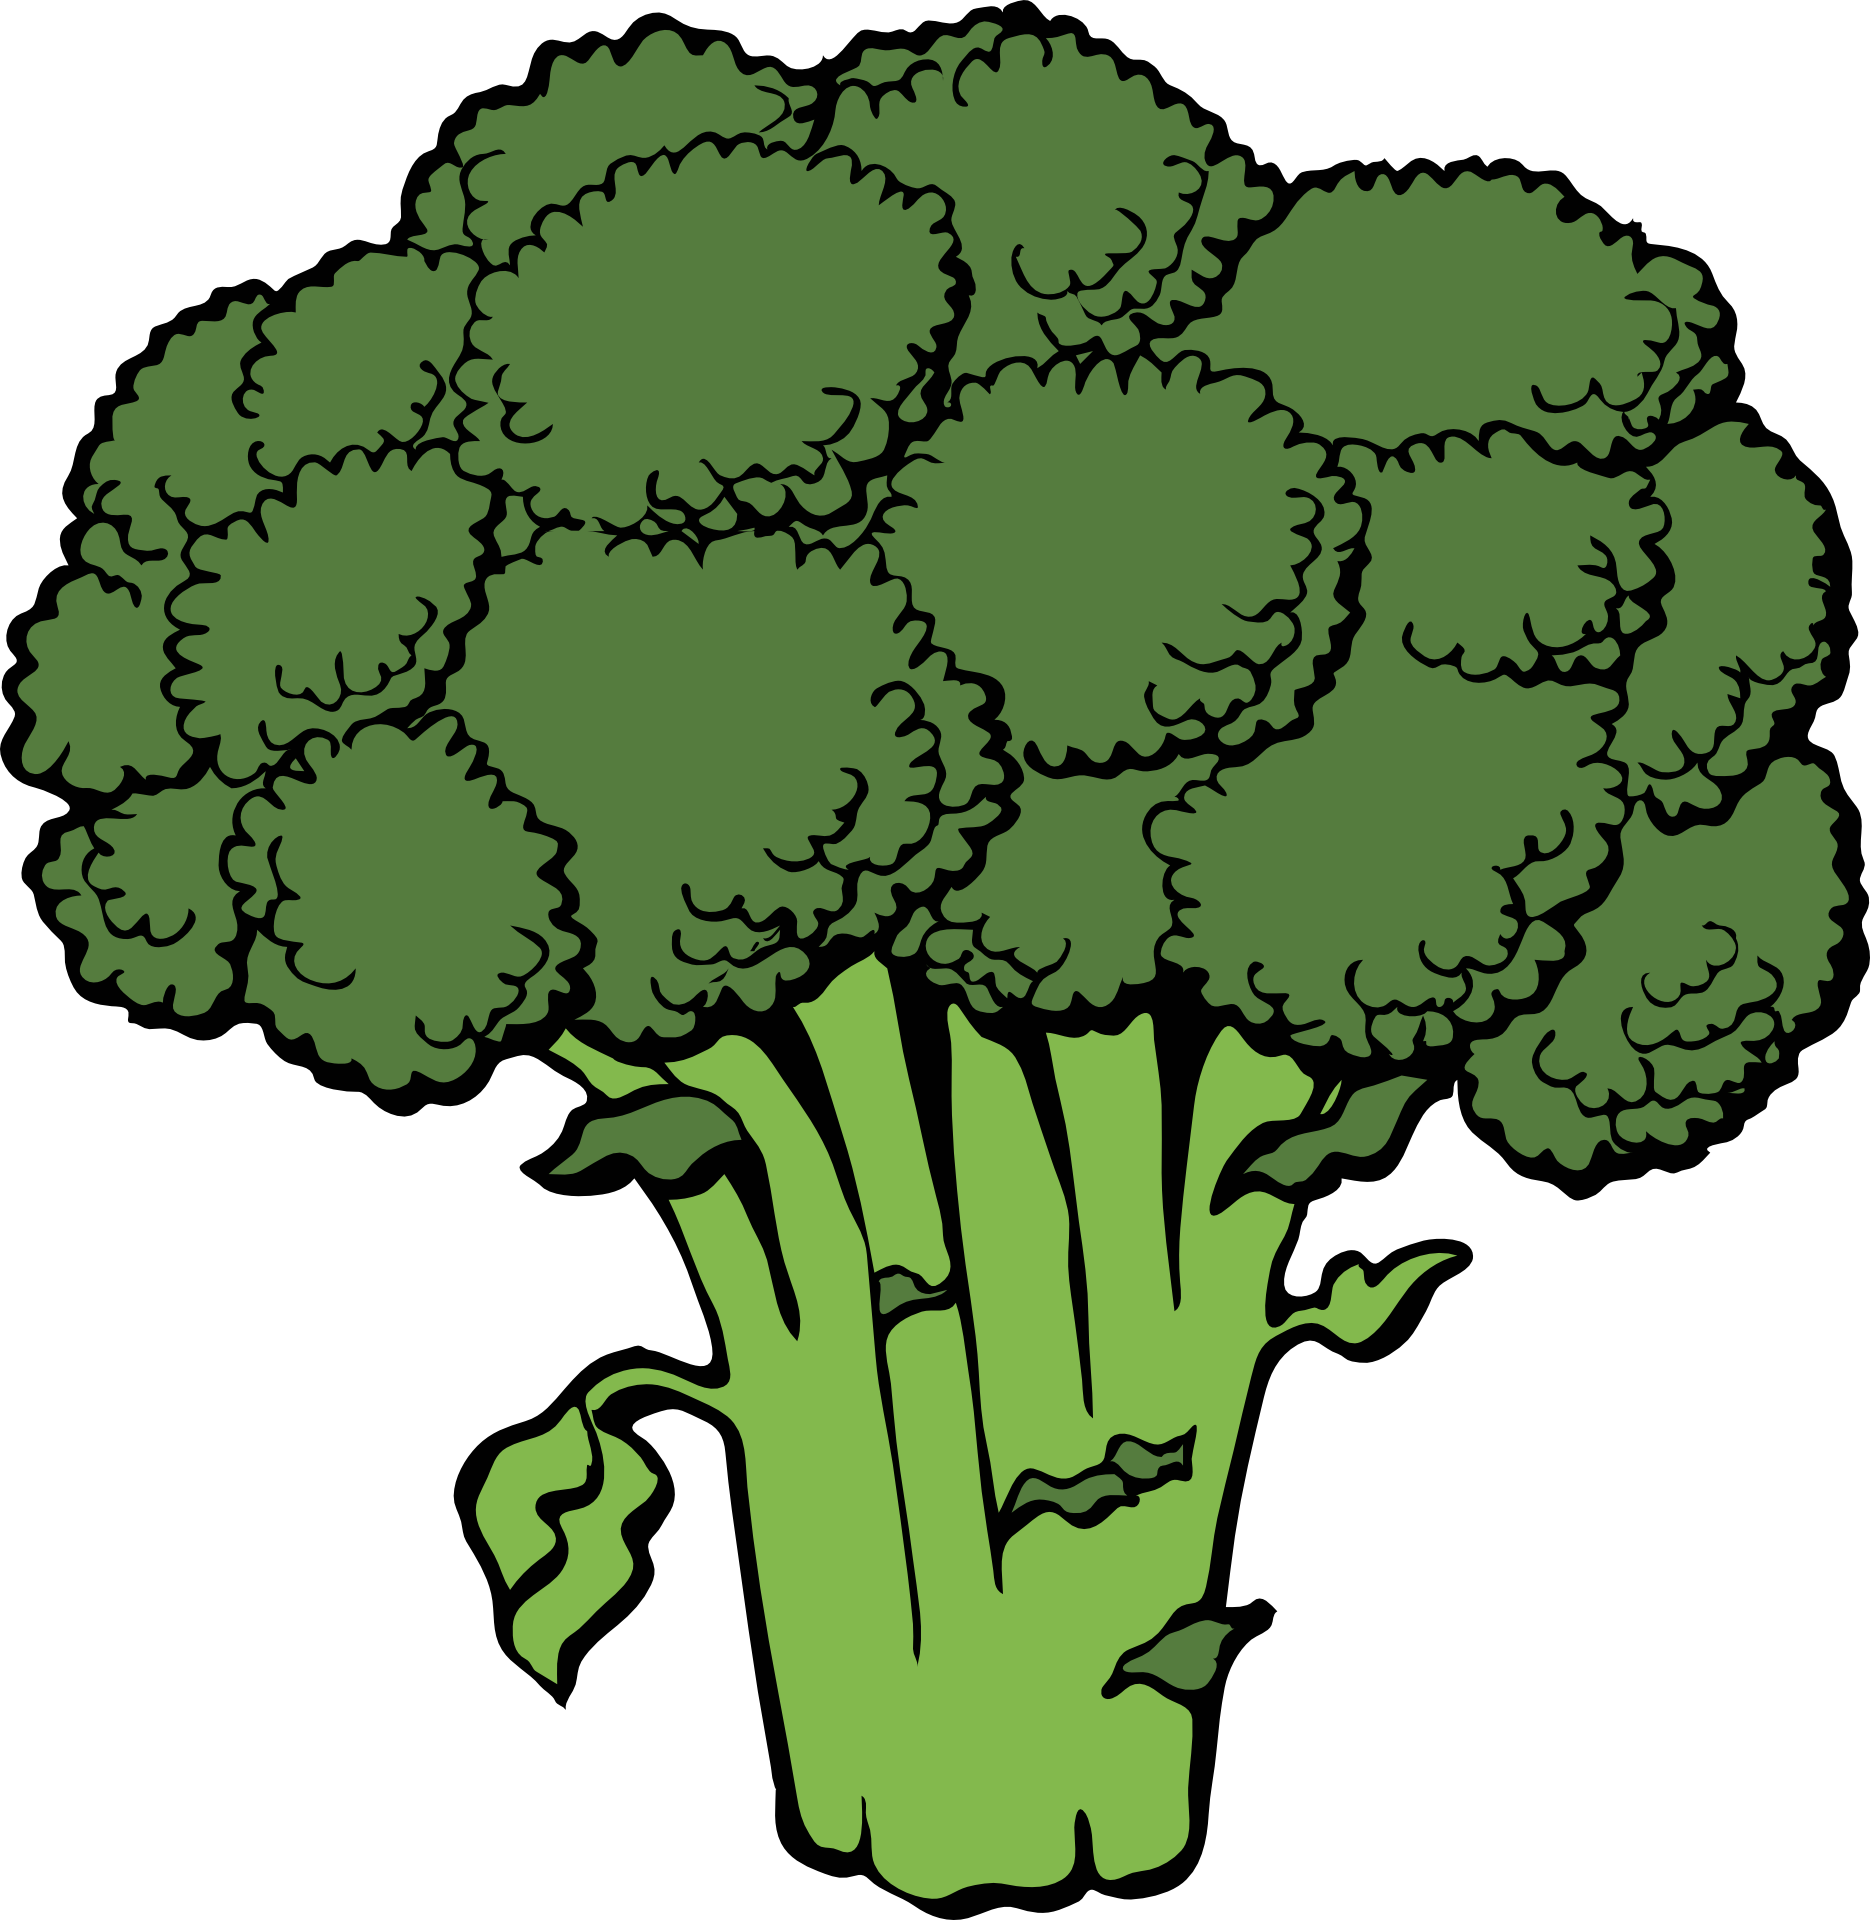 banner transparent download Broccoli clipart green thing. Vegetable clip art cauliflower.